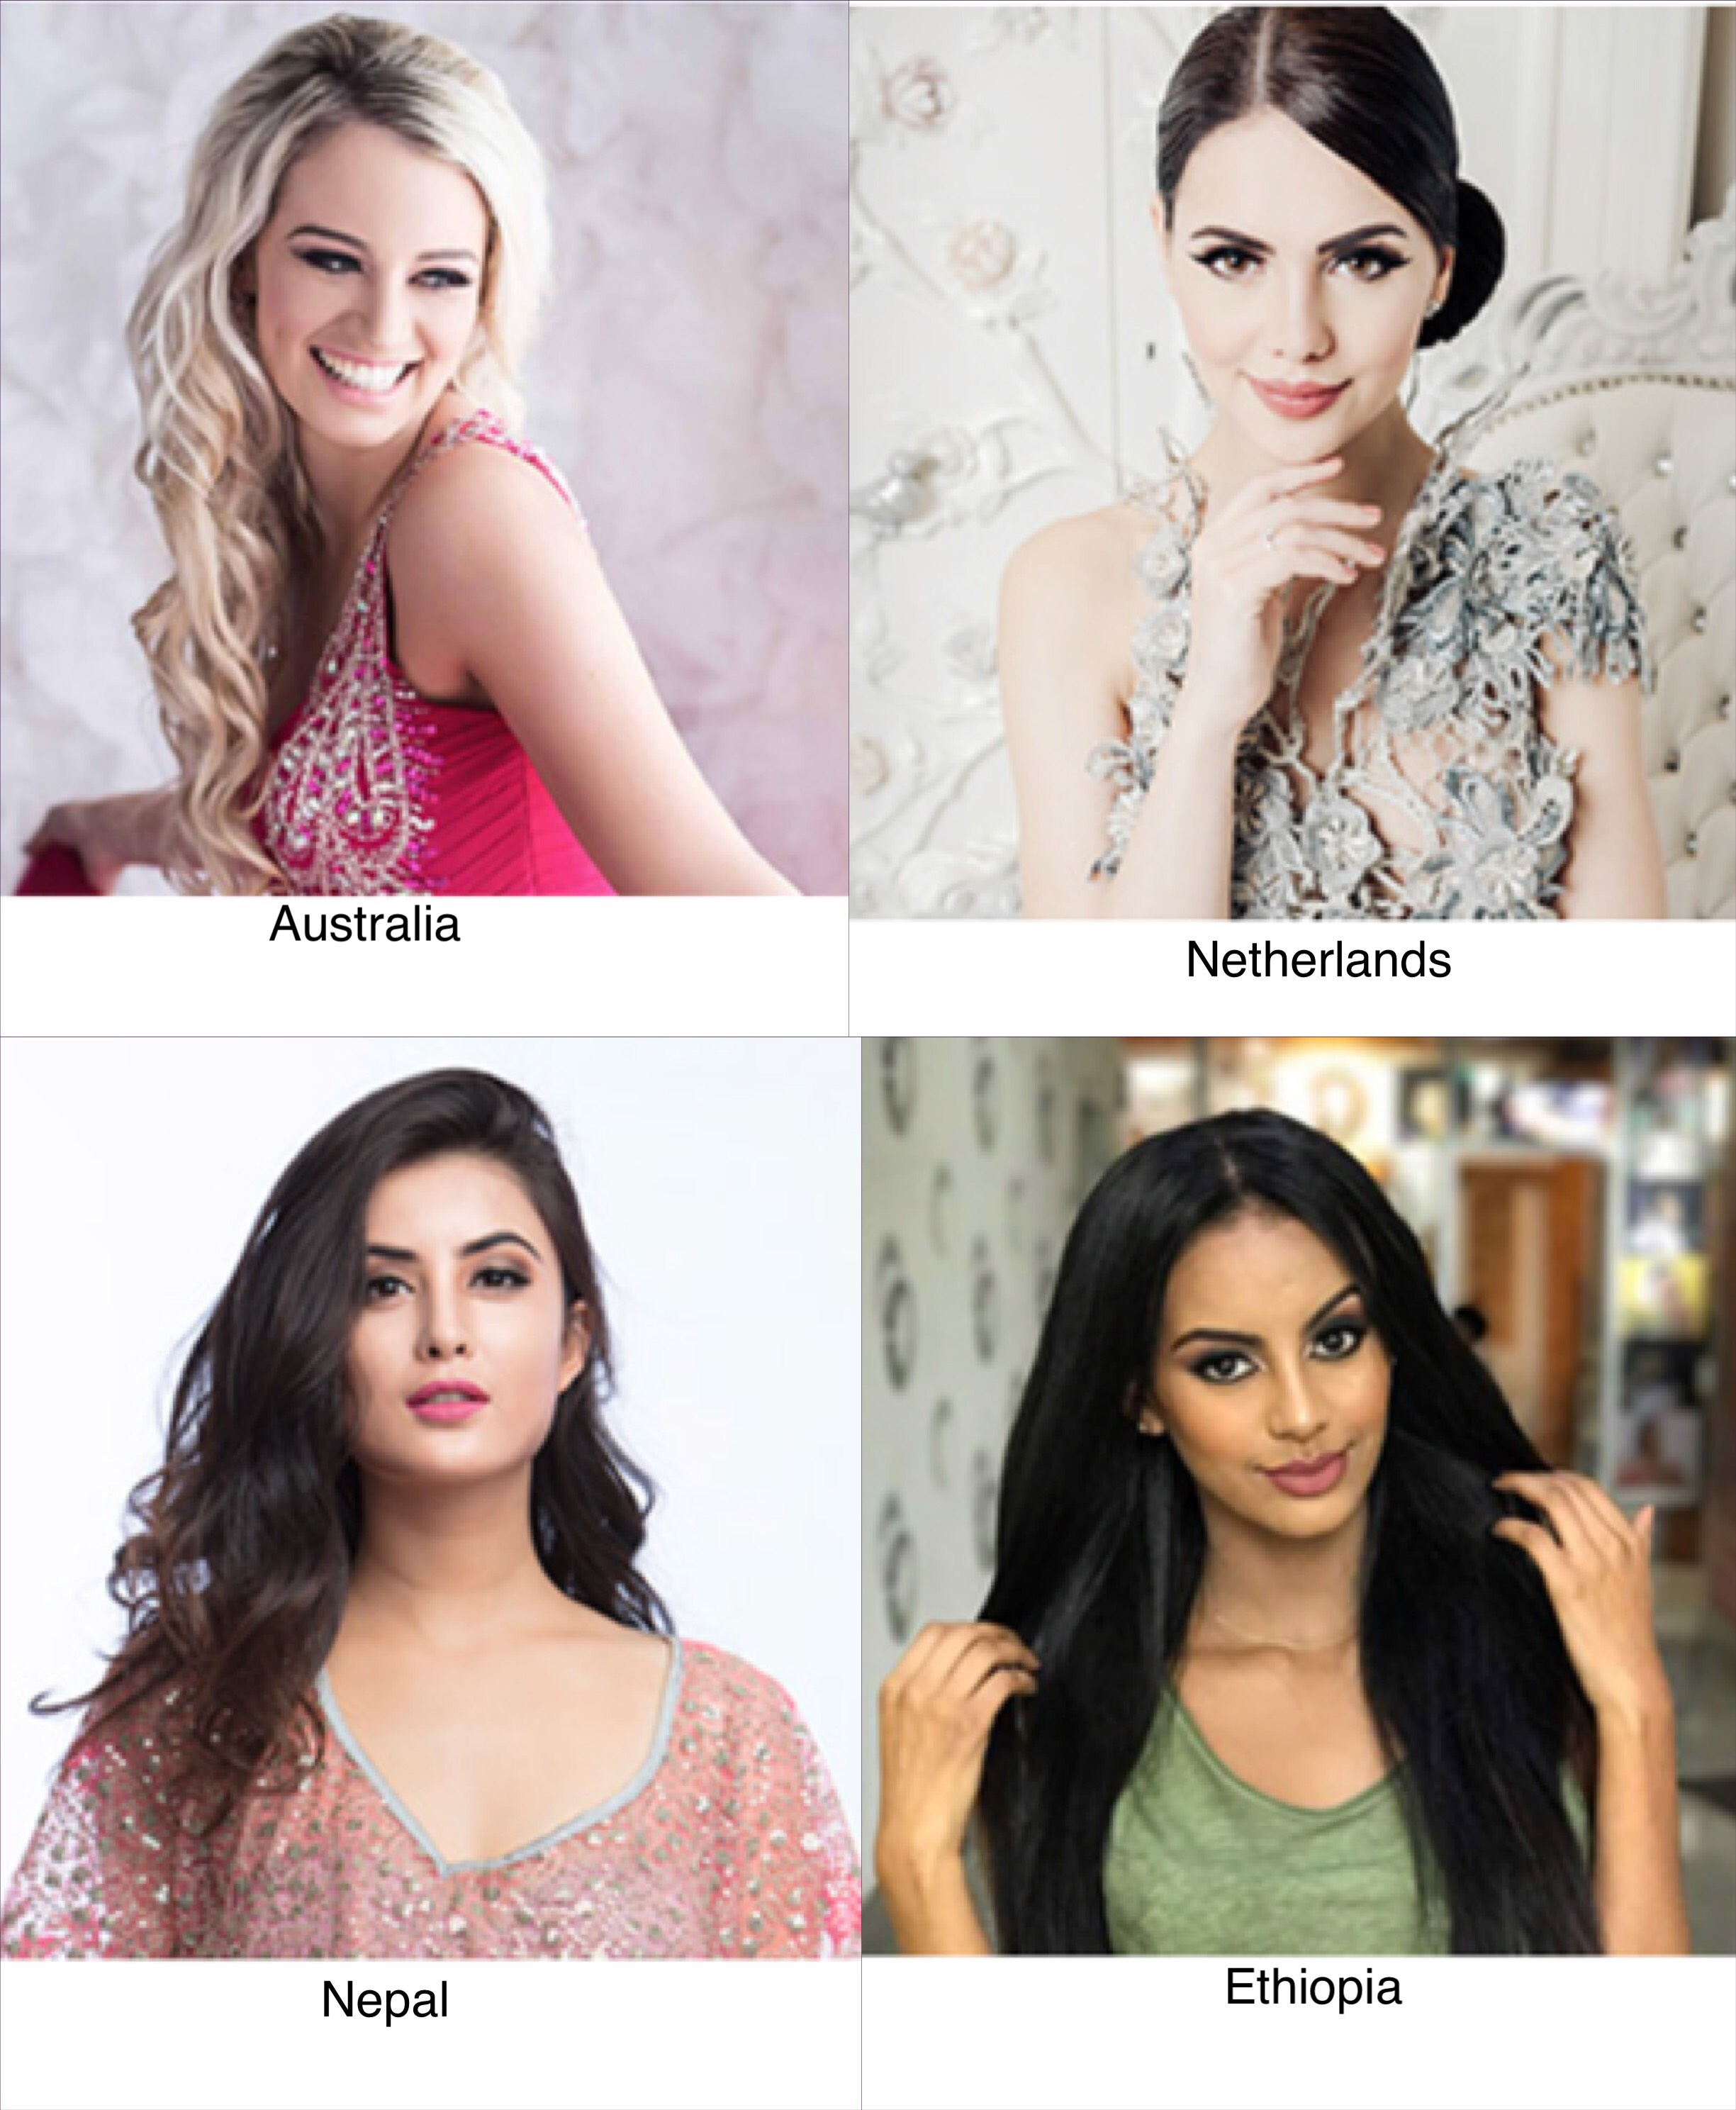 DARK HORSE. These countries can enter the Top 15. Photos from Miss International website